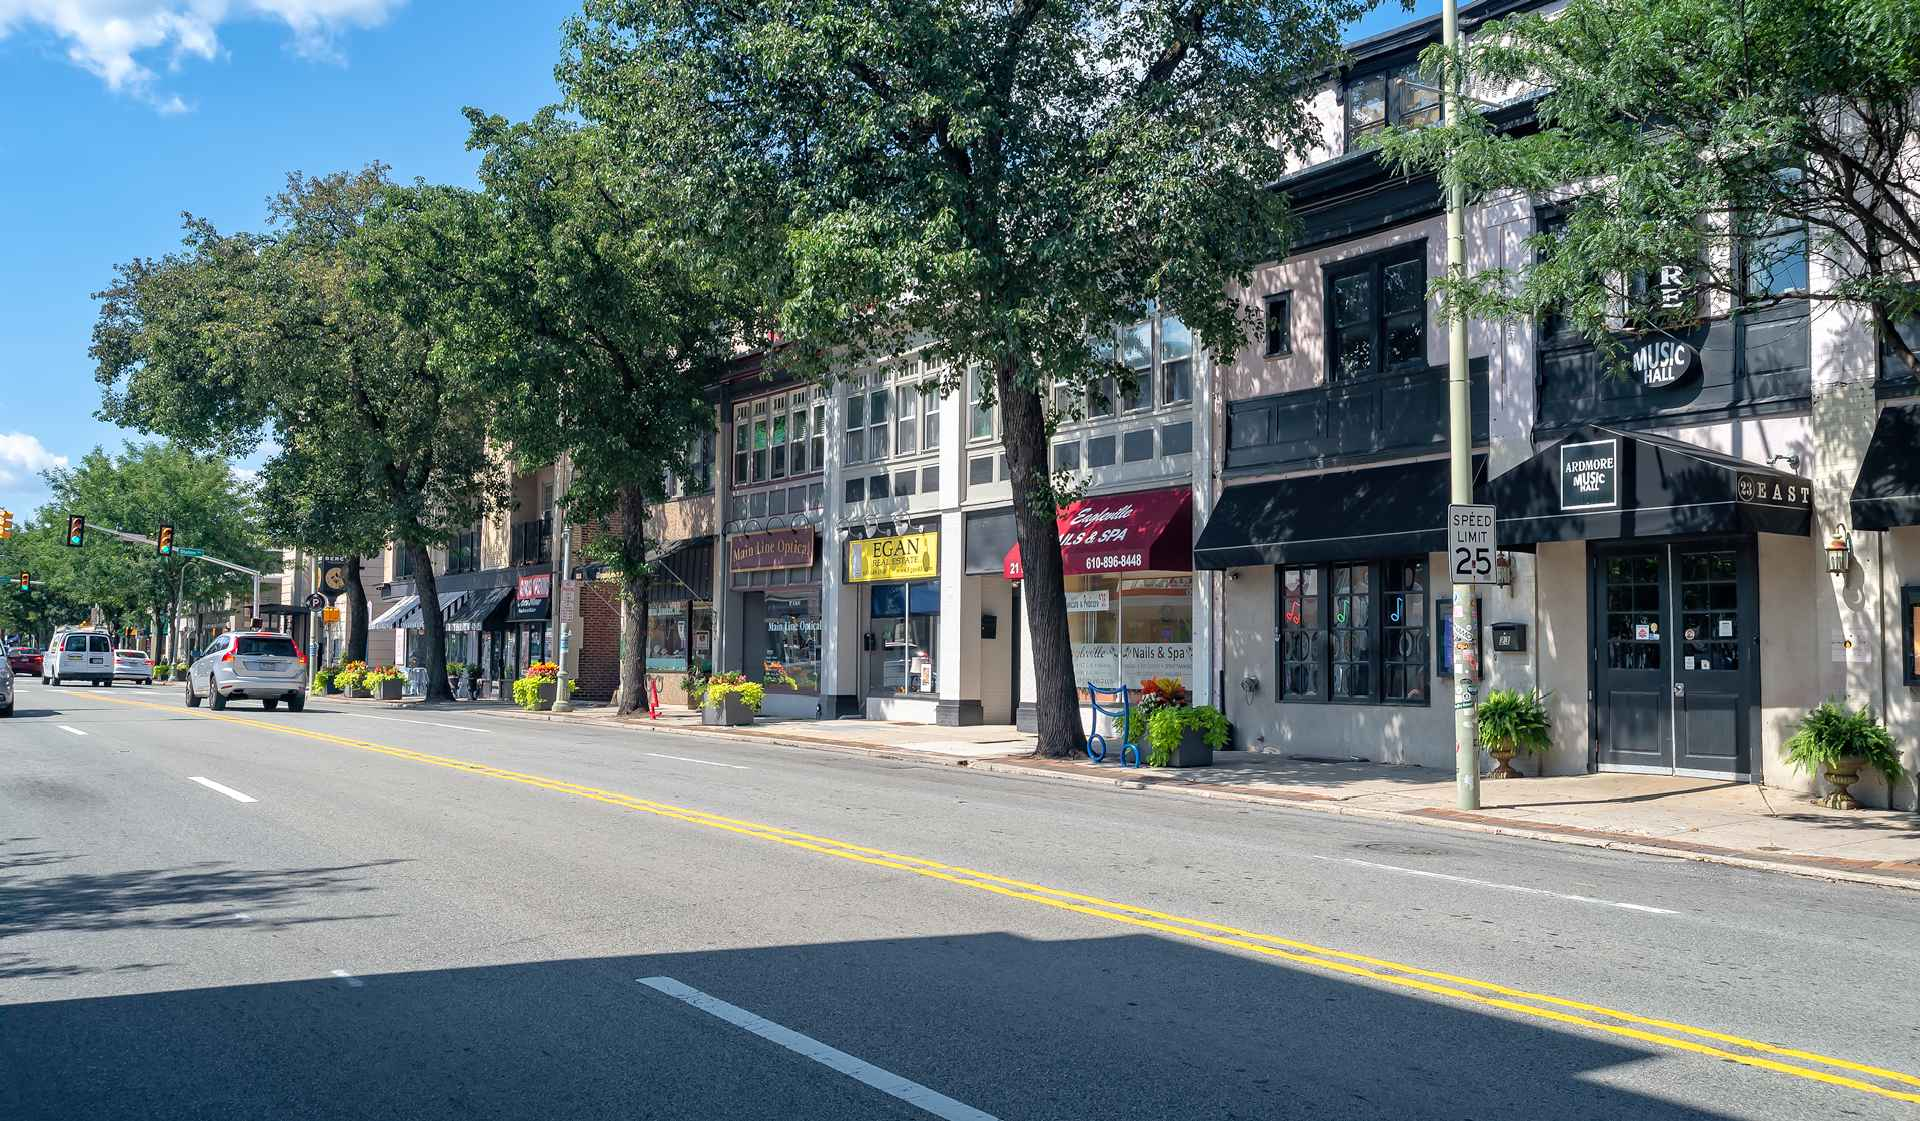 One Ardmore Place - Luxury Philadelphia Apartments - Lacaster street shops